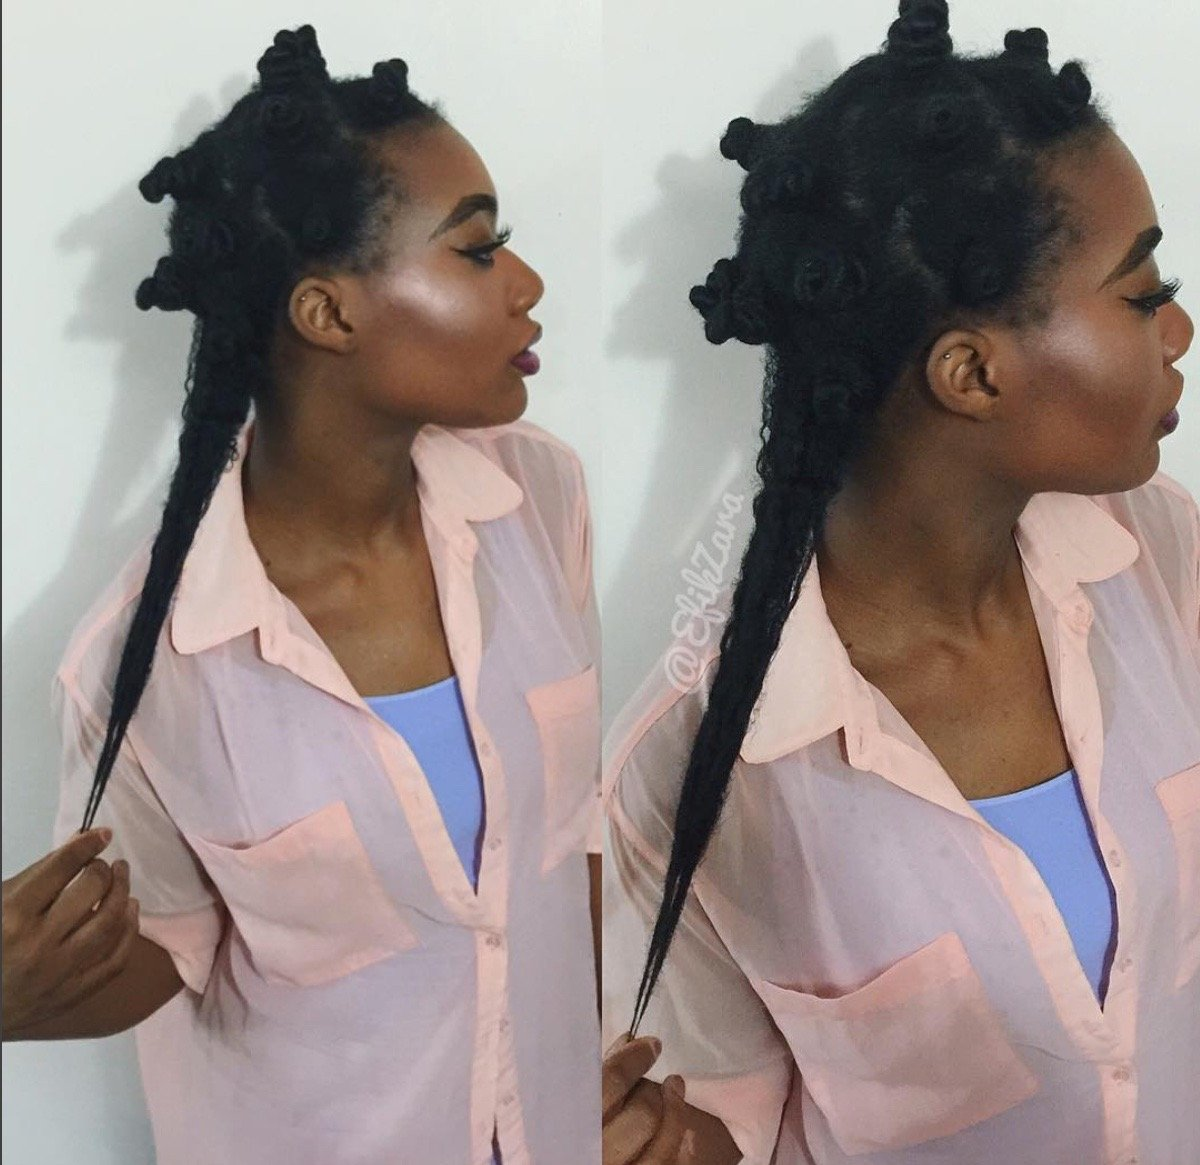 How I Achieved Long and Healthy Type 4 Natural Hair